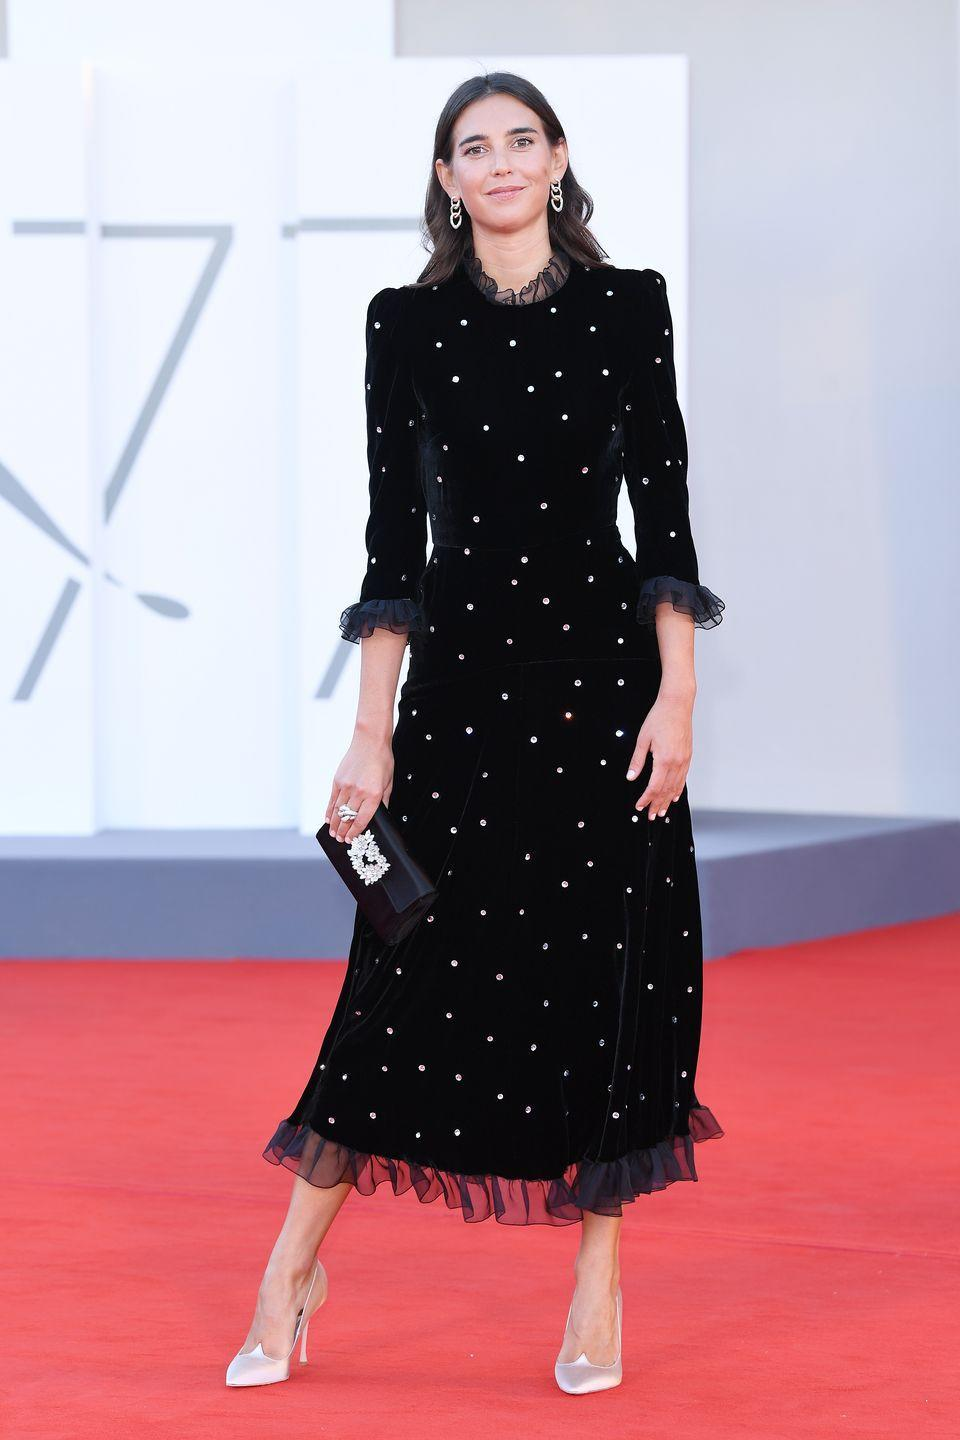 <p>Viola Arrivabene wears a black velvet dress by Philosophy di Lorenzo Serafini, shoes by Roger Vivier, and jewelry by Pomellato. </p>